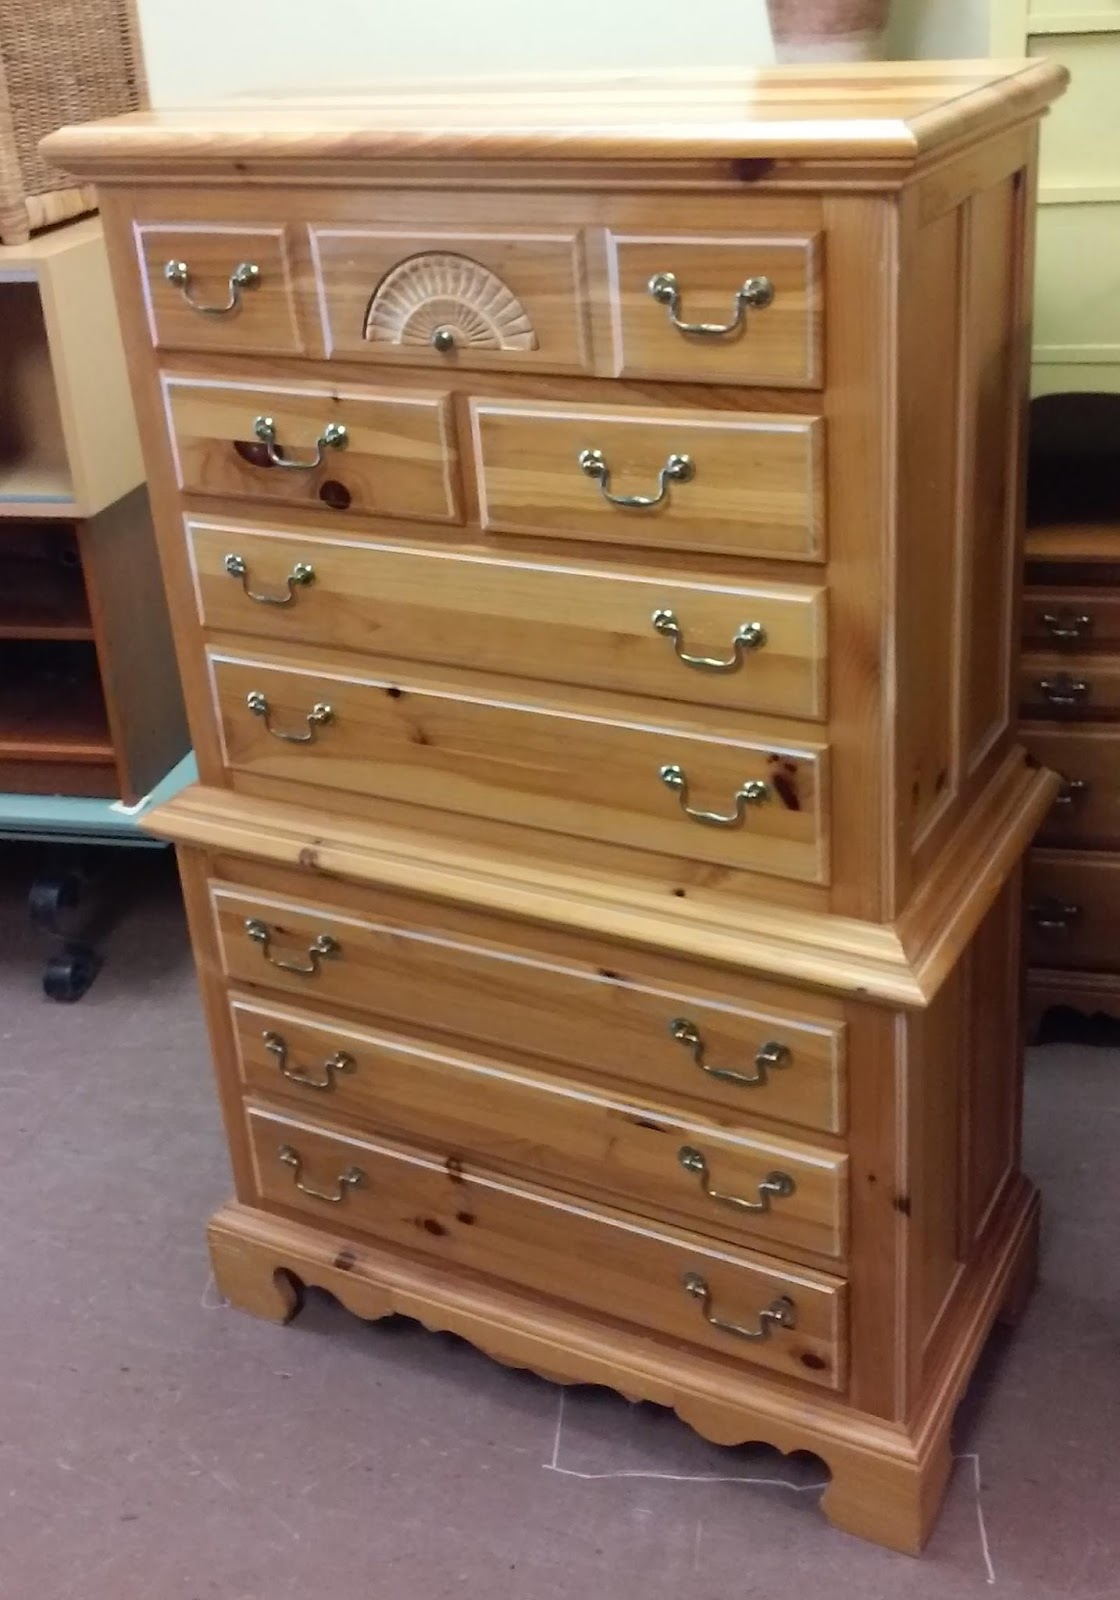 Sold Reduced Broyhill Country Pine Chest Of Drawers